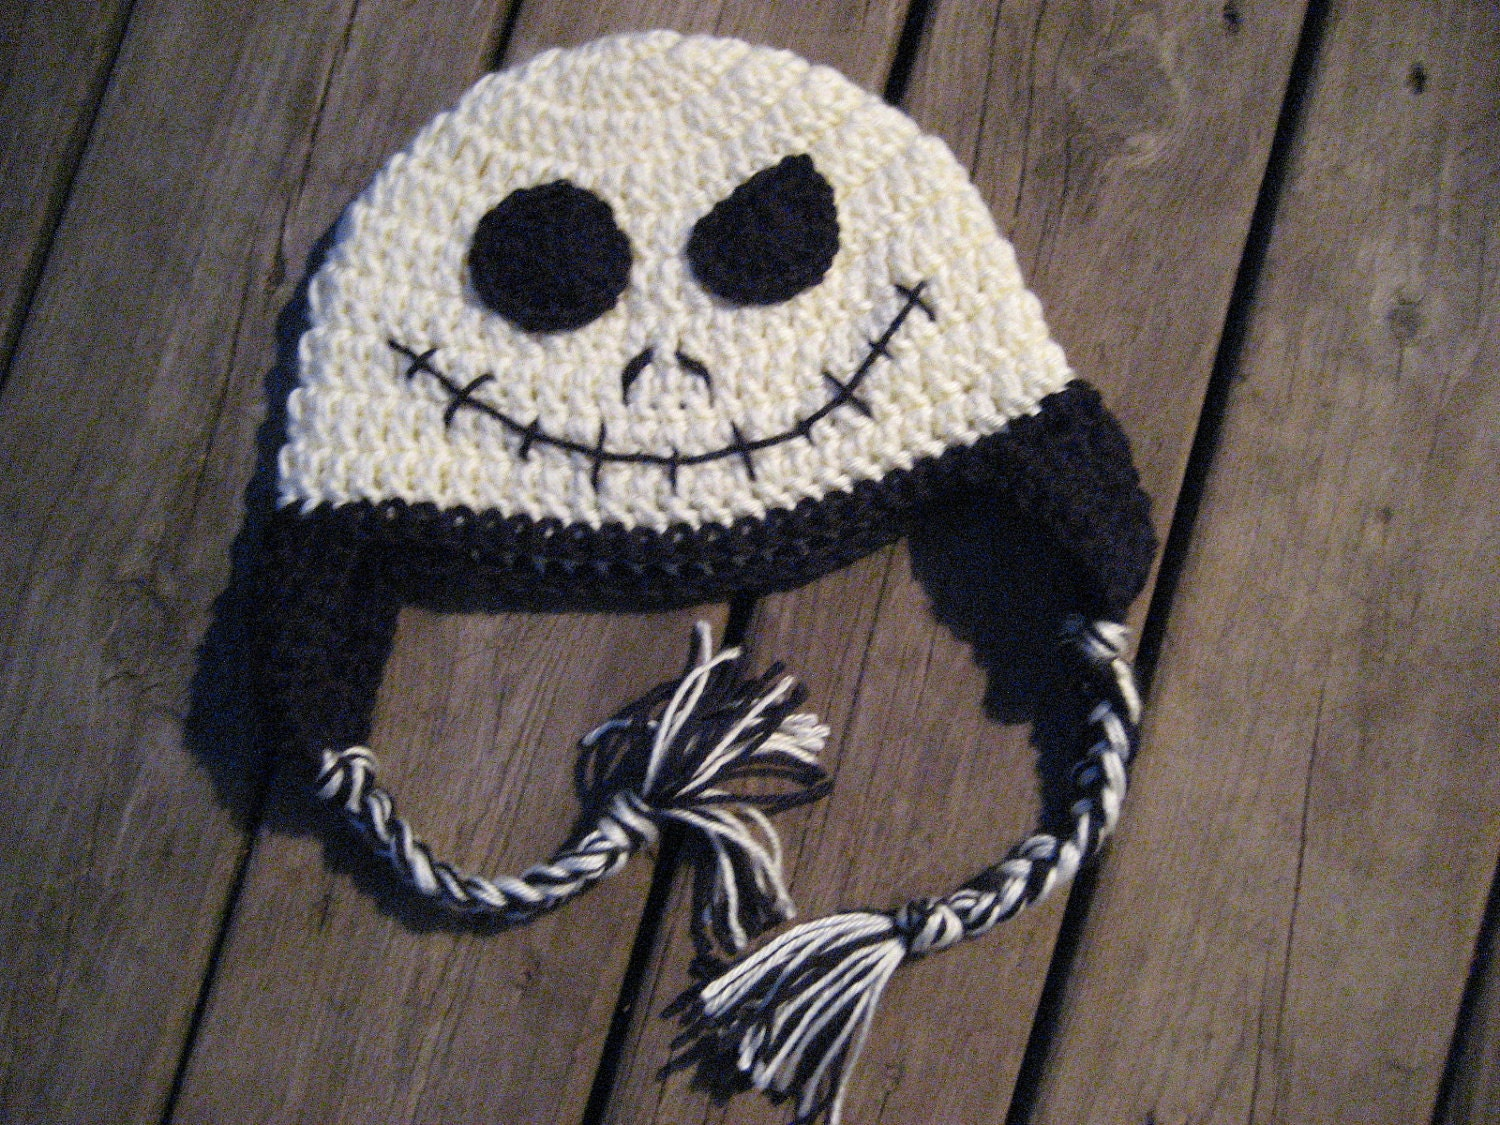 Crochet Pattern For Jack Skellington Hat : Items similar to Crochet Earflap Hat - Jack Skellington ...